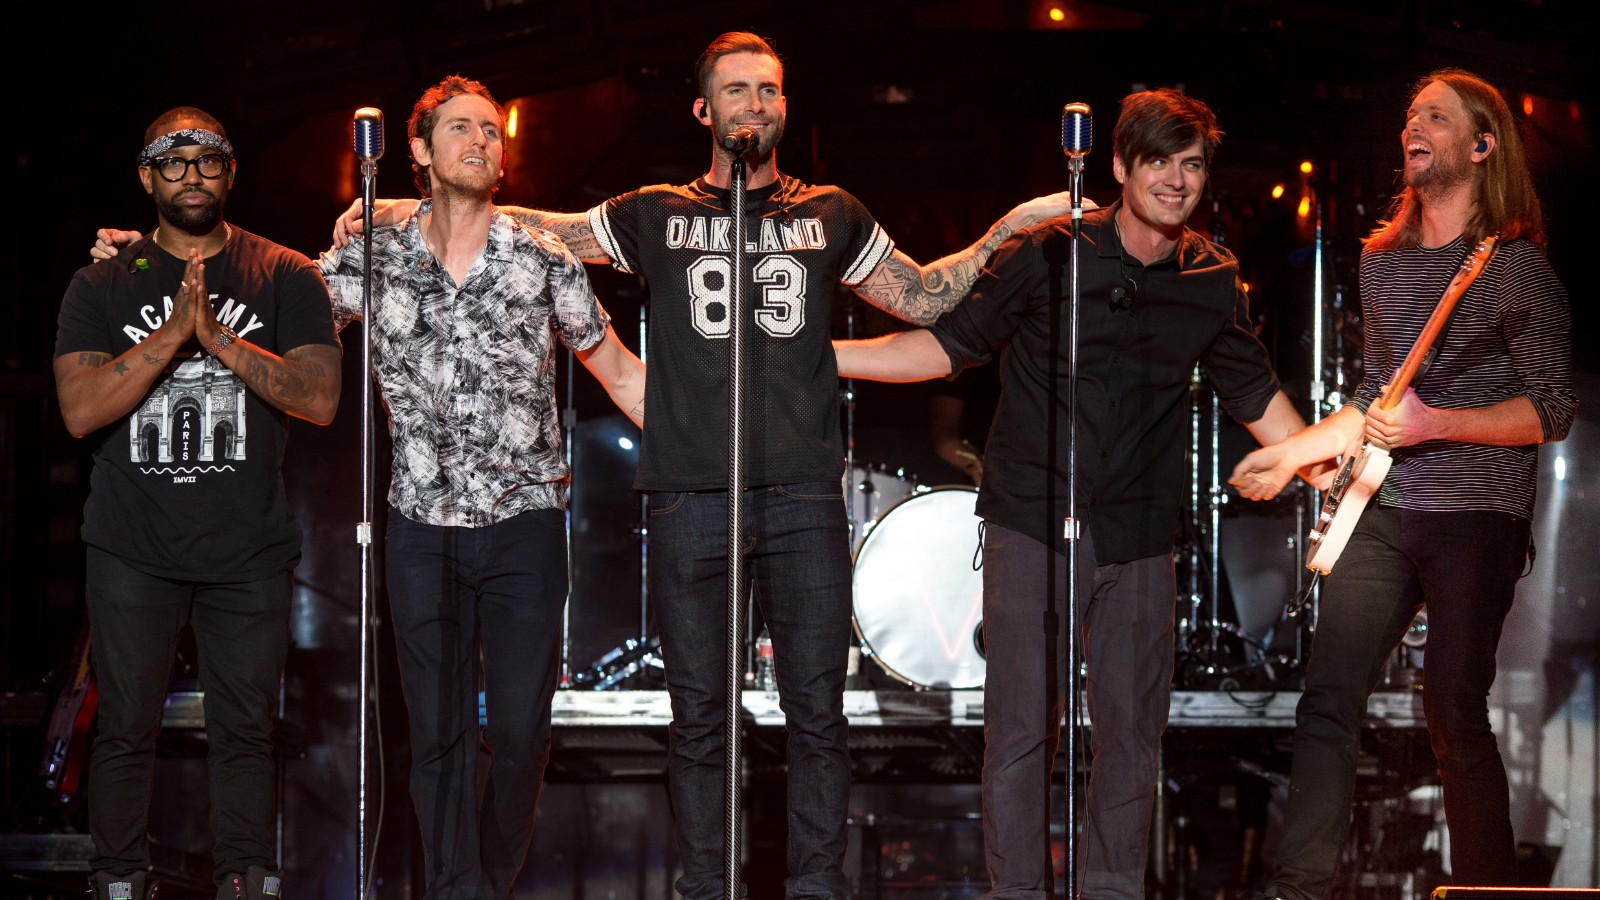 Super Bowl Liii Halftime Show Maroon 5 Will Headline With Guests